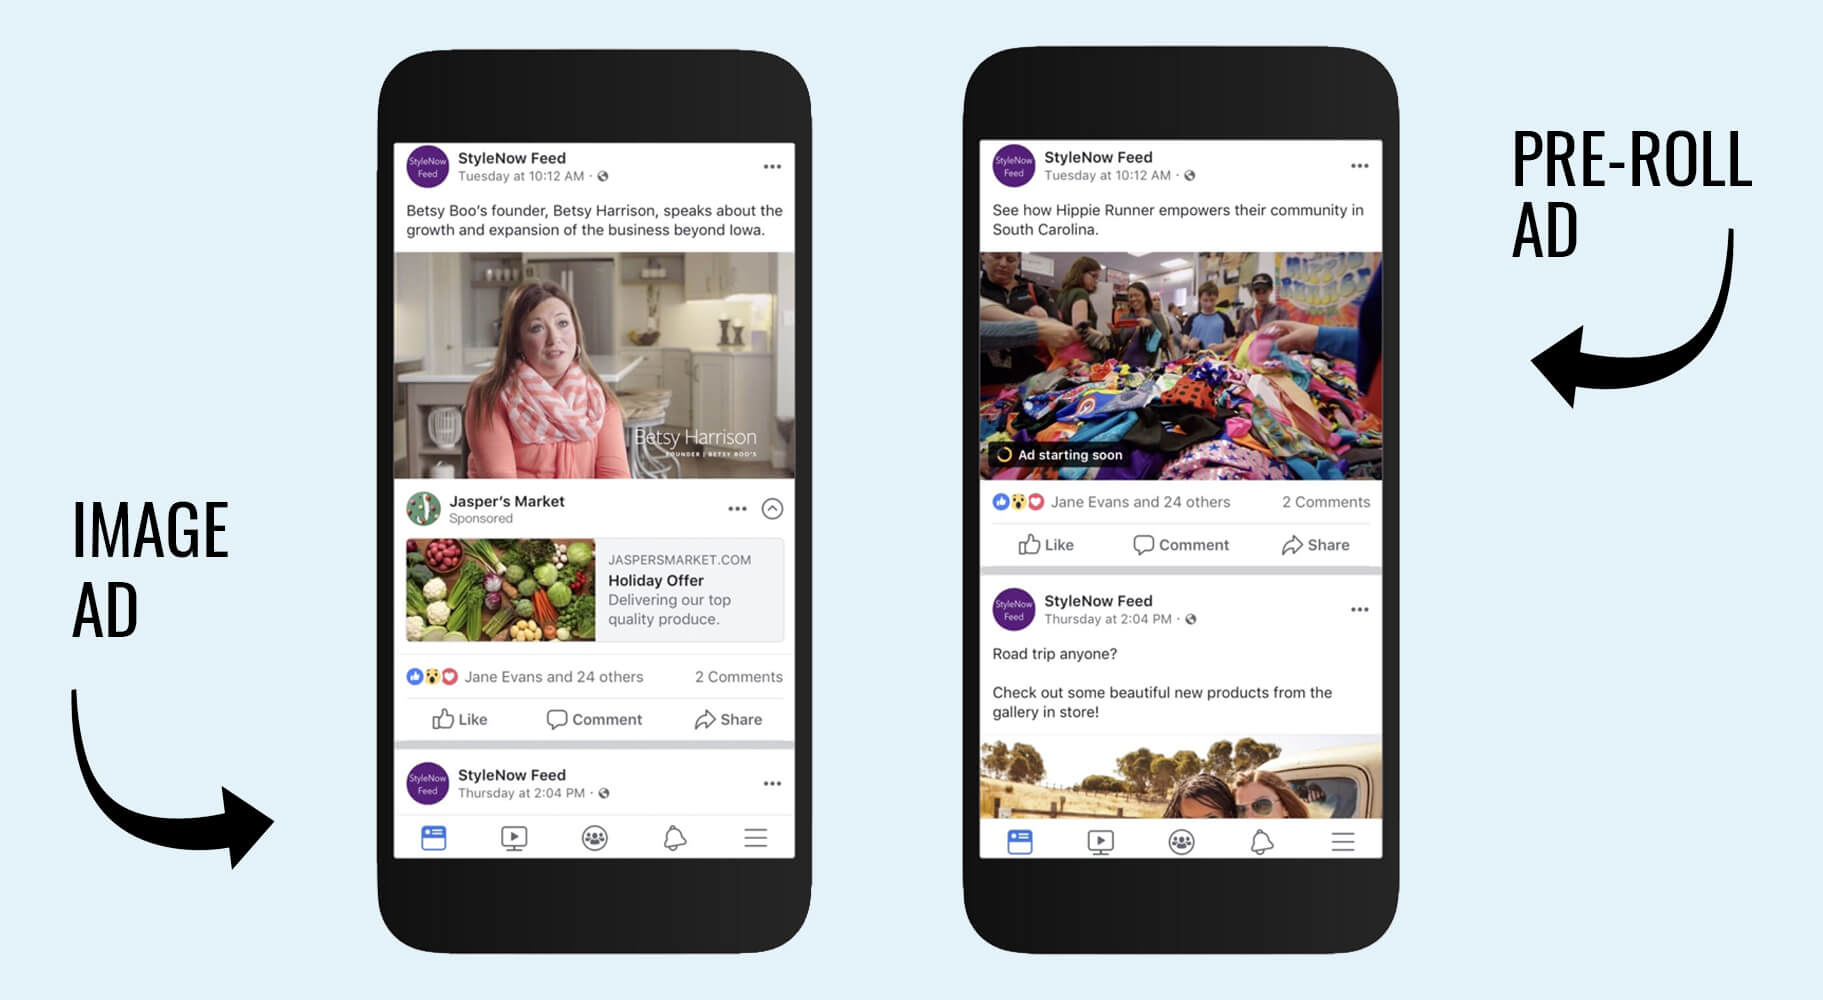 Facebook makes a play for creators with new tools, features for monetizing content